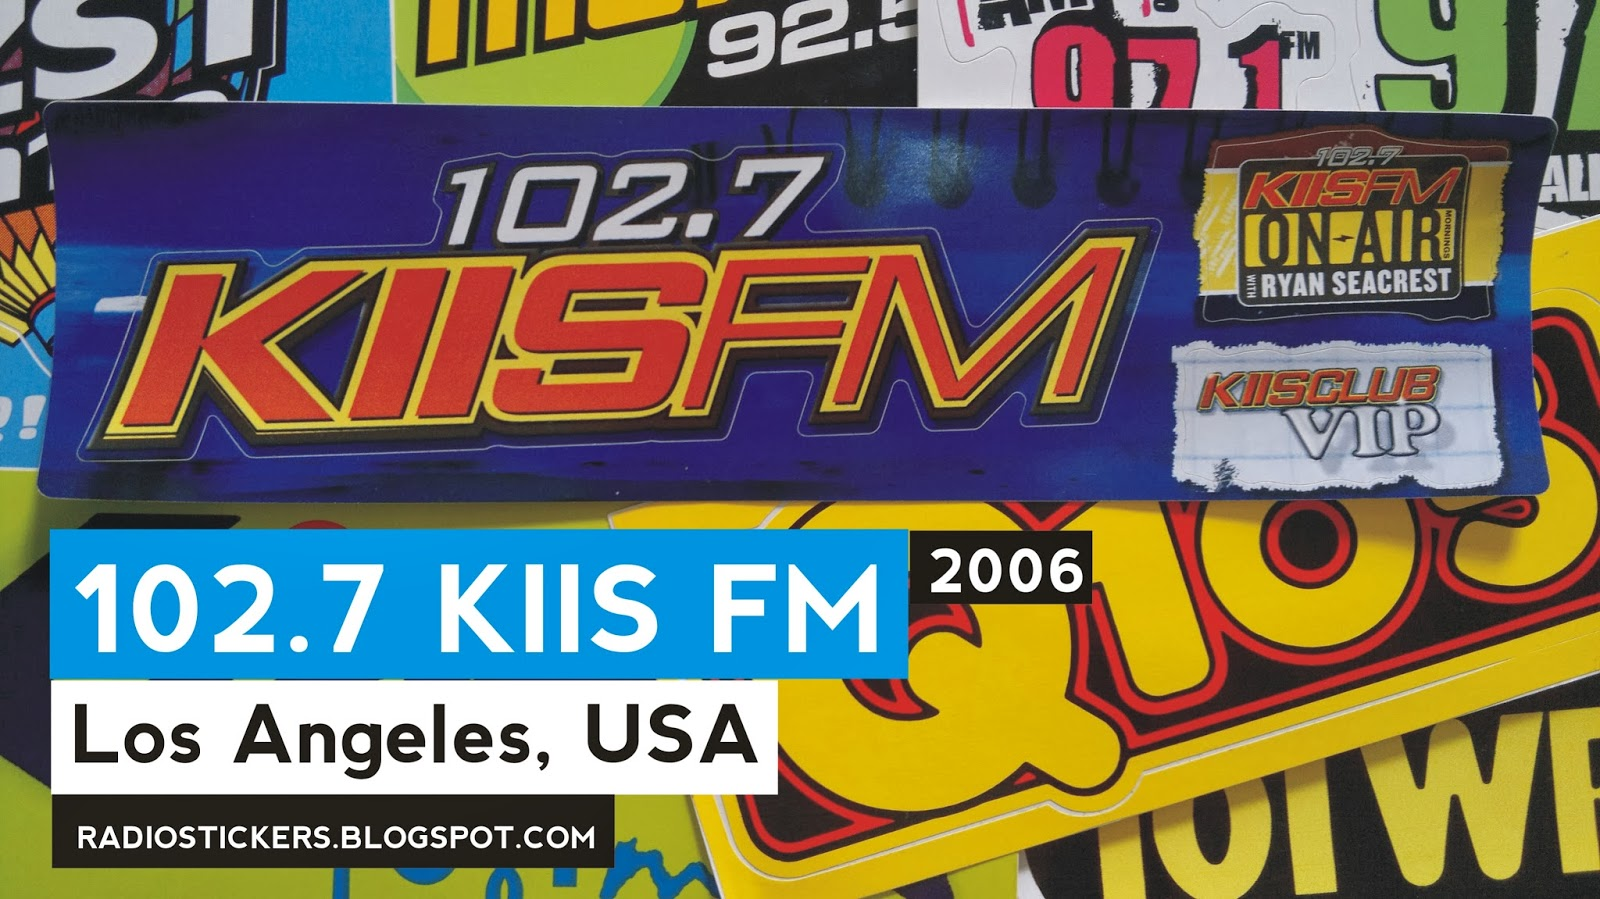 Kiis fm los angeles phone number